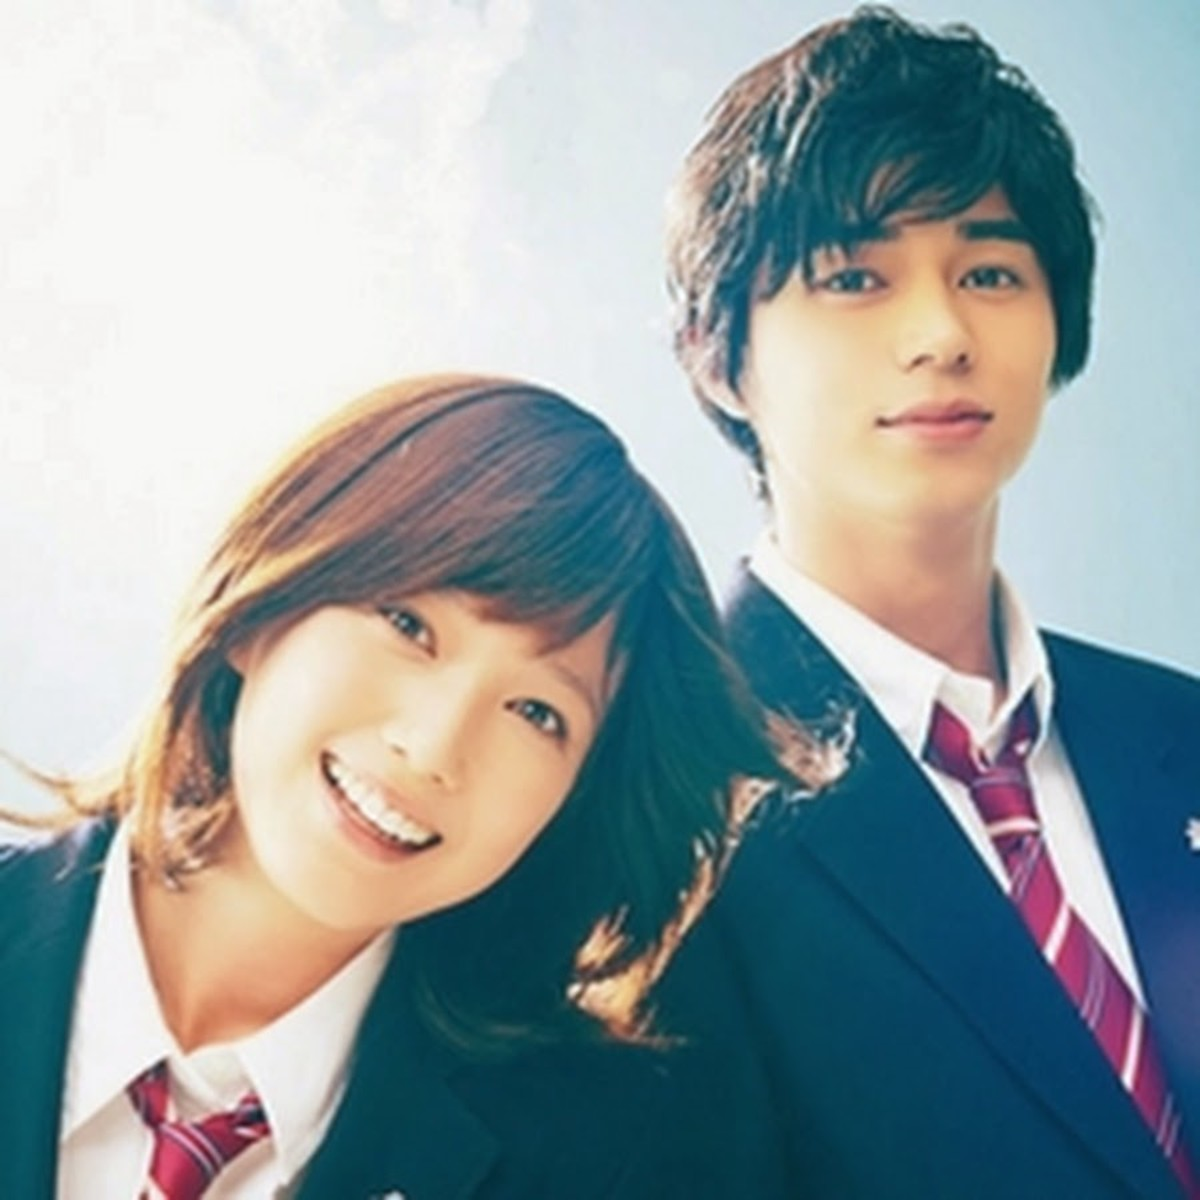 Top 15 Best Shoujo Romance Live Action Movies